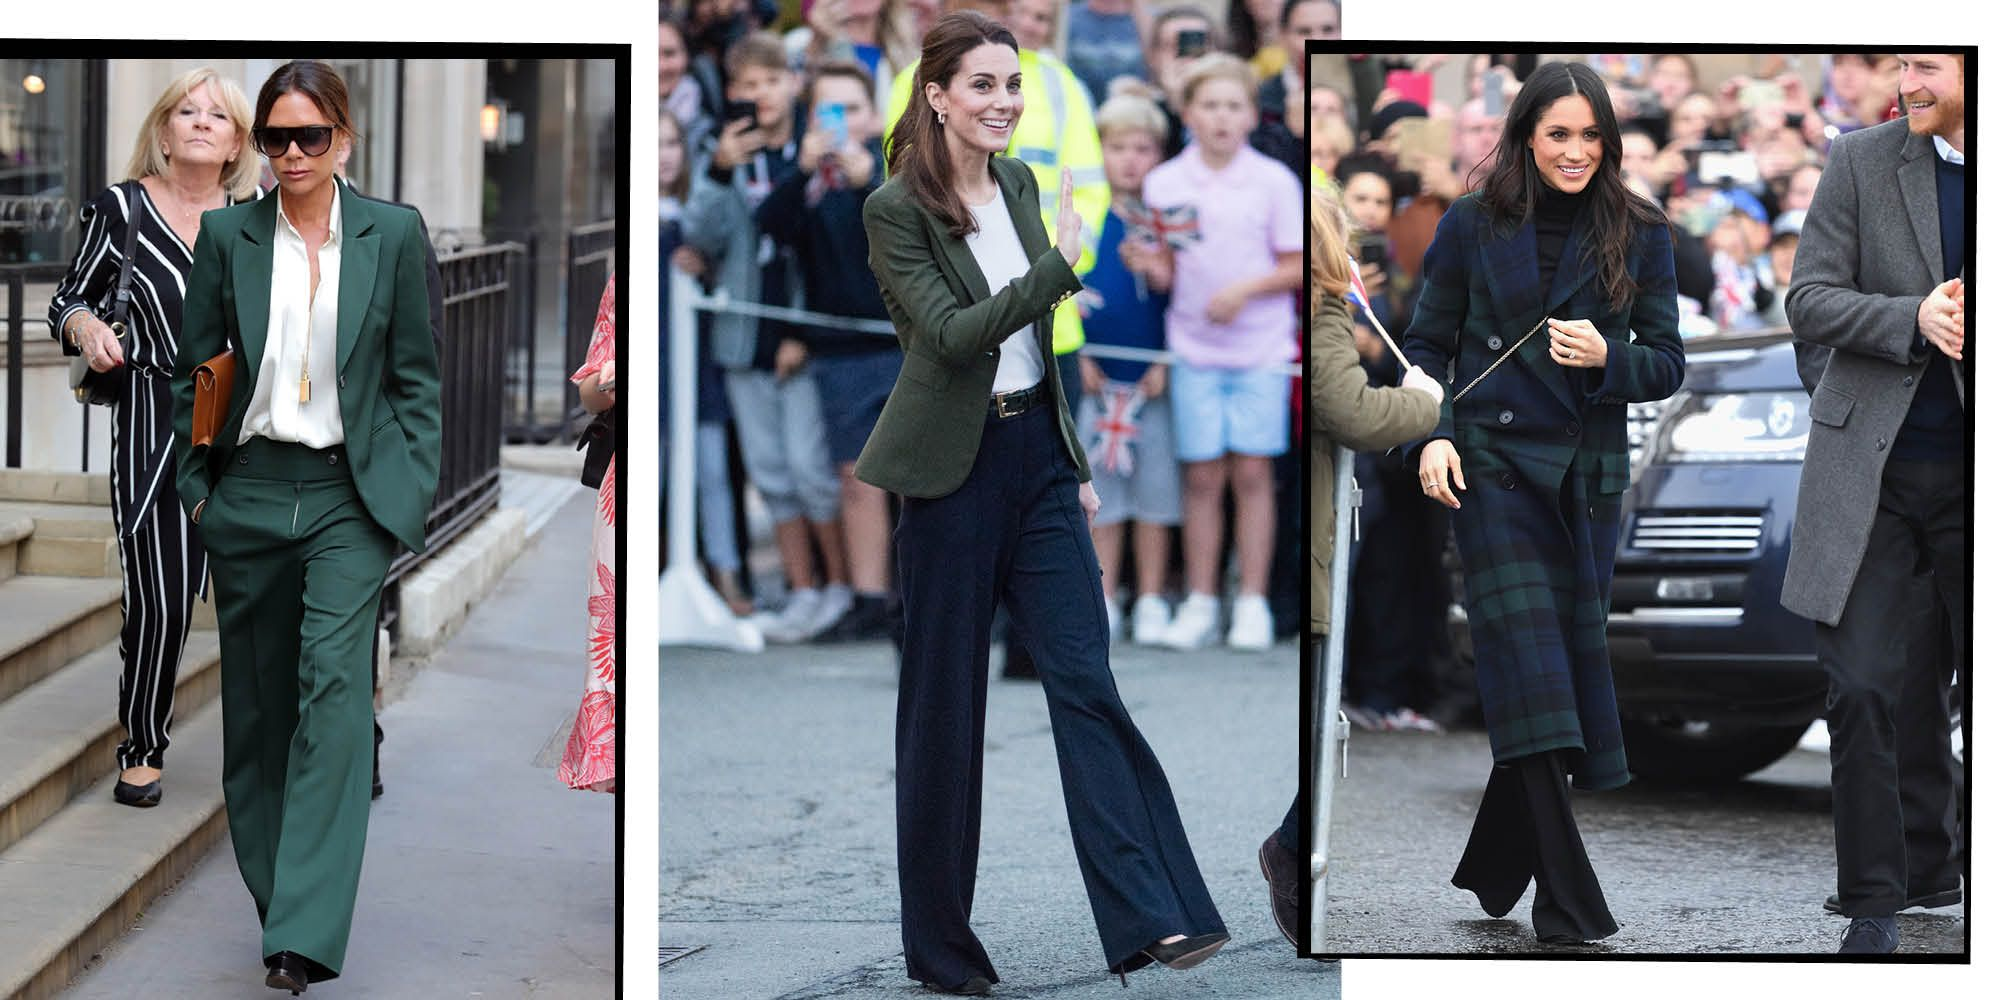 Kate Middleton Just Took A Leaf Out Of Meghan Markle And Victoria Beckham's Style Books